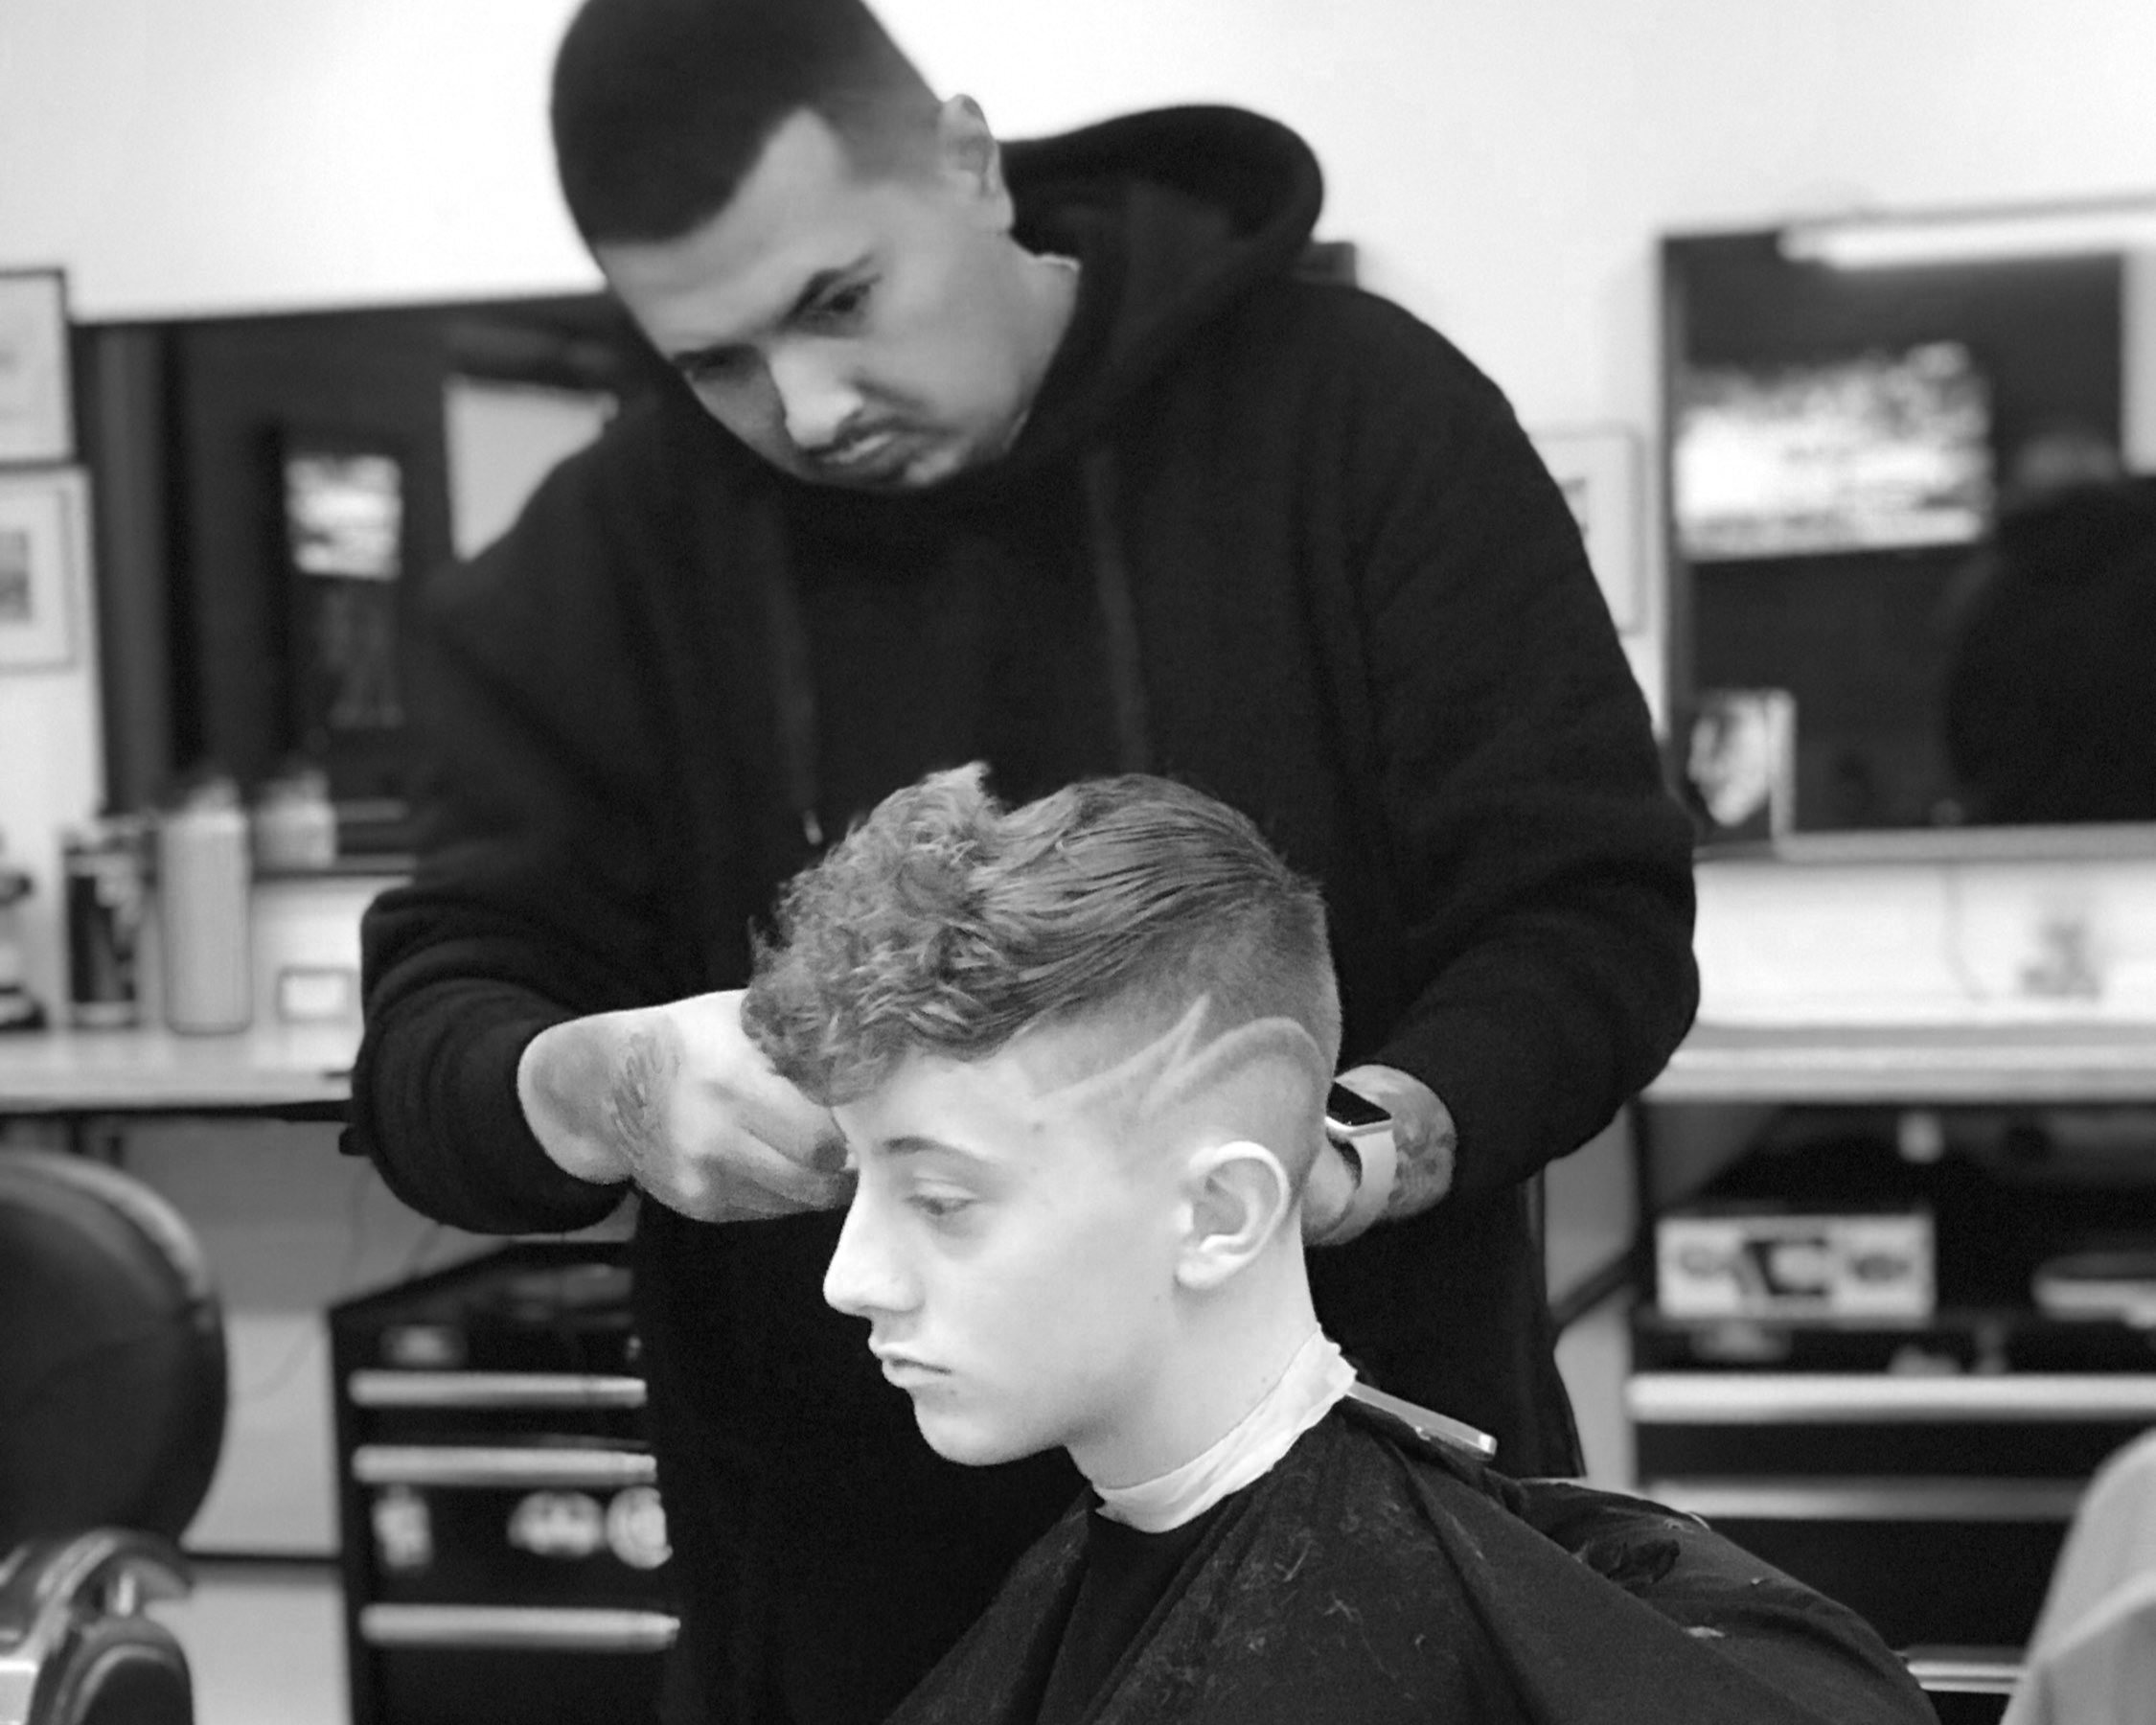 Fades, pomps tapers